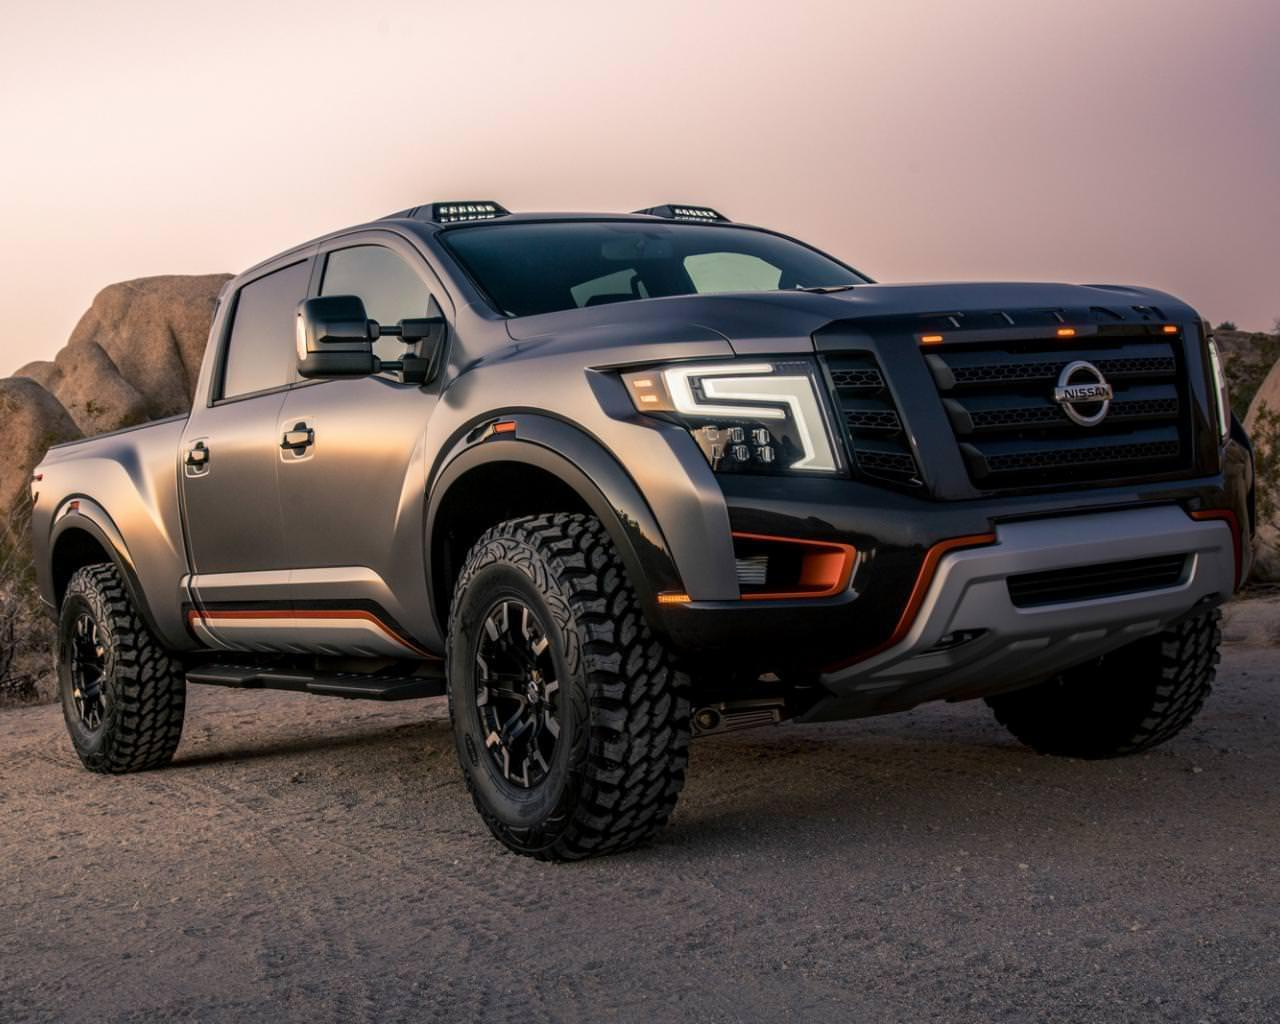 Nissan Titan Wallpapers Pickup Truck Wallpapers For Android Apk Download